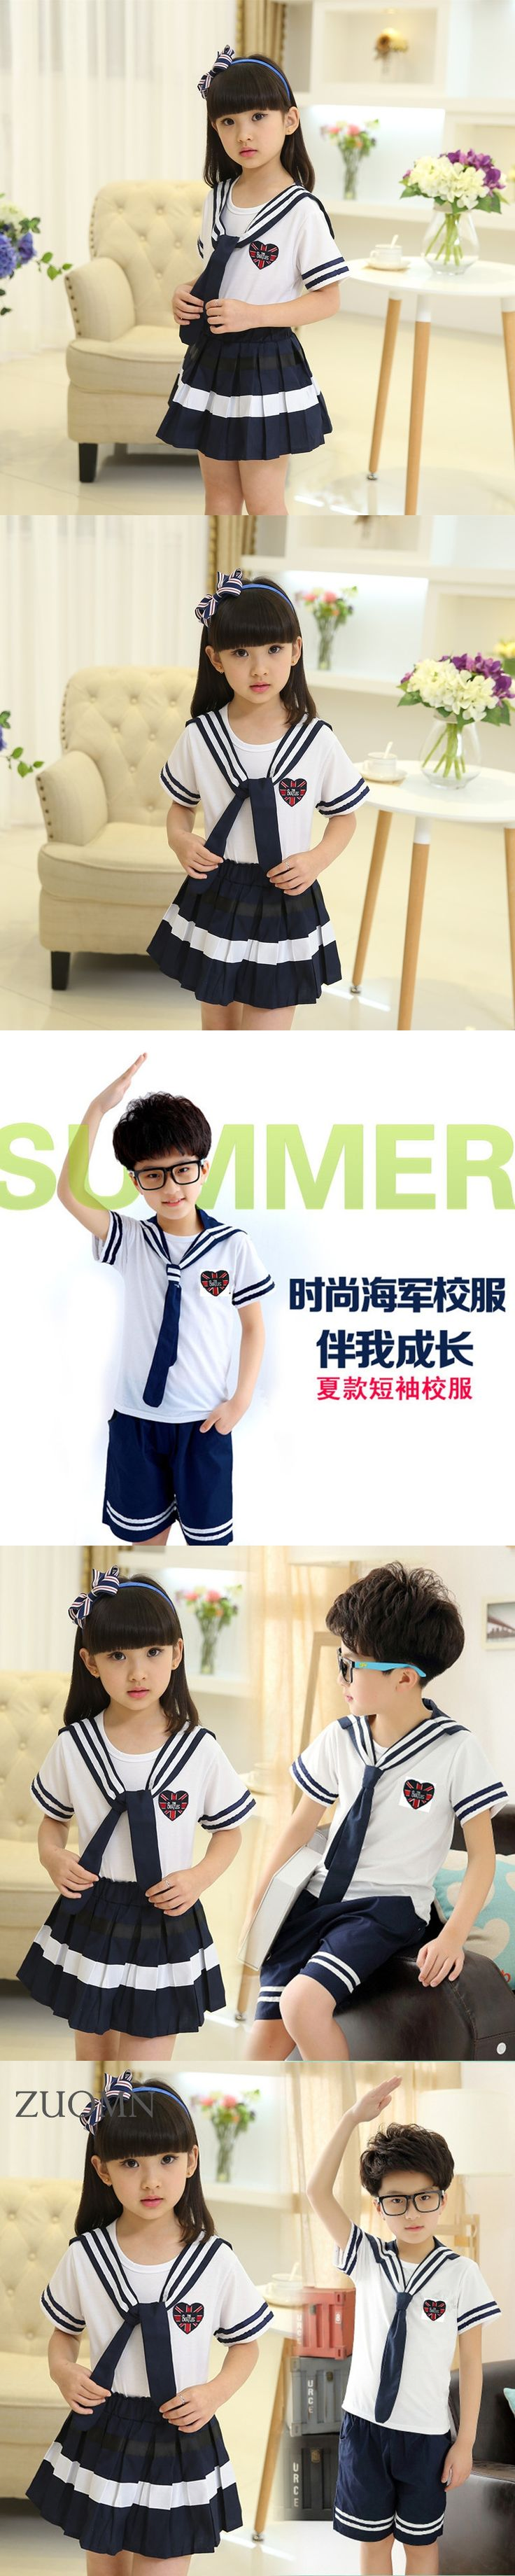 Childrens Costumes Set School Uniform for Girls Boys Cheerleader Students Sports Wear Suit Kid School Uniforms Boy Clothes YL283